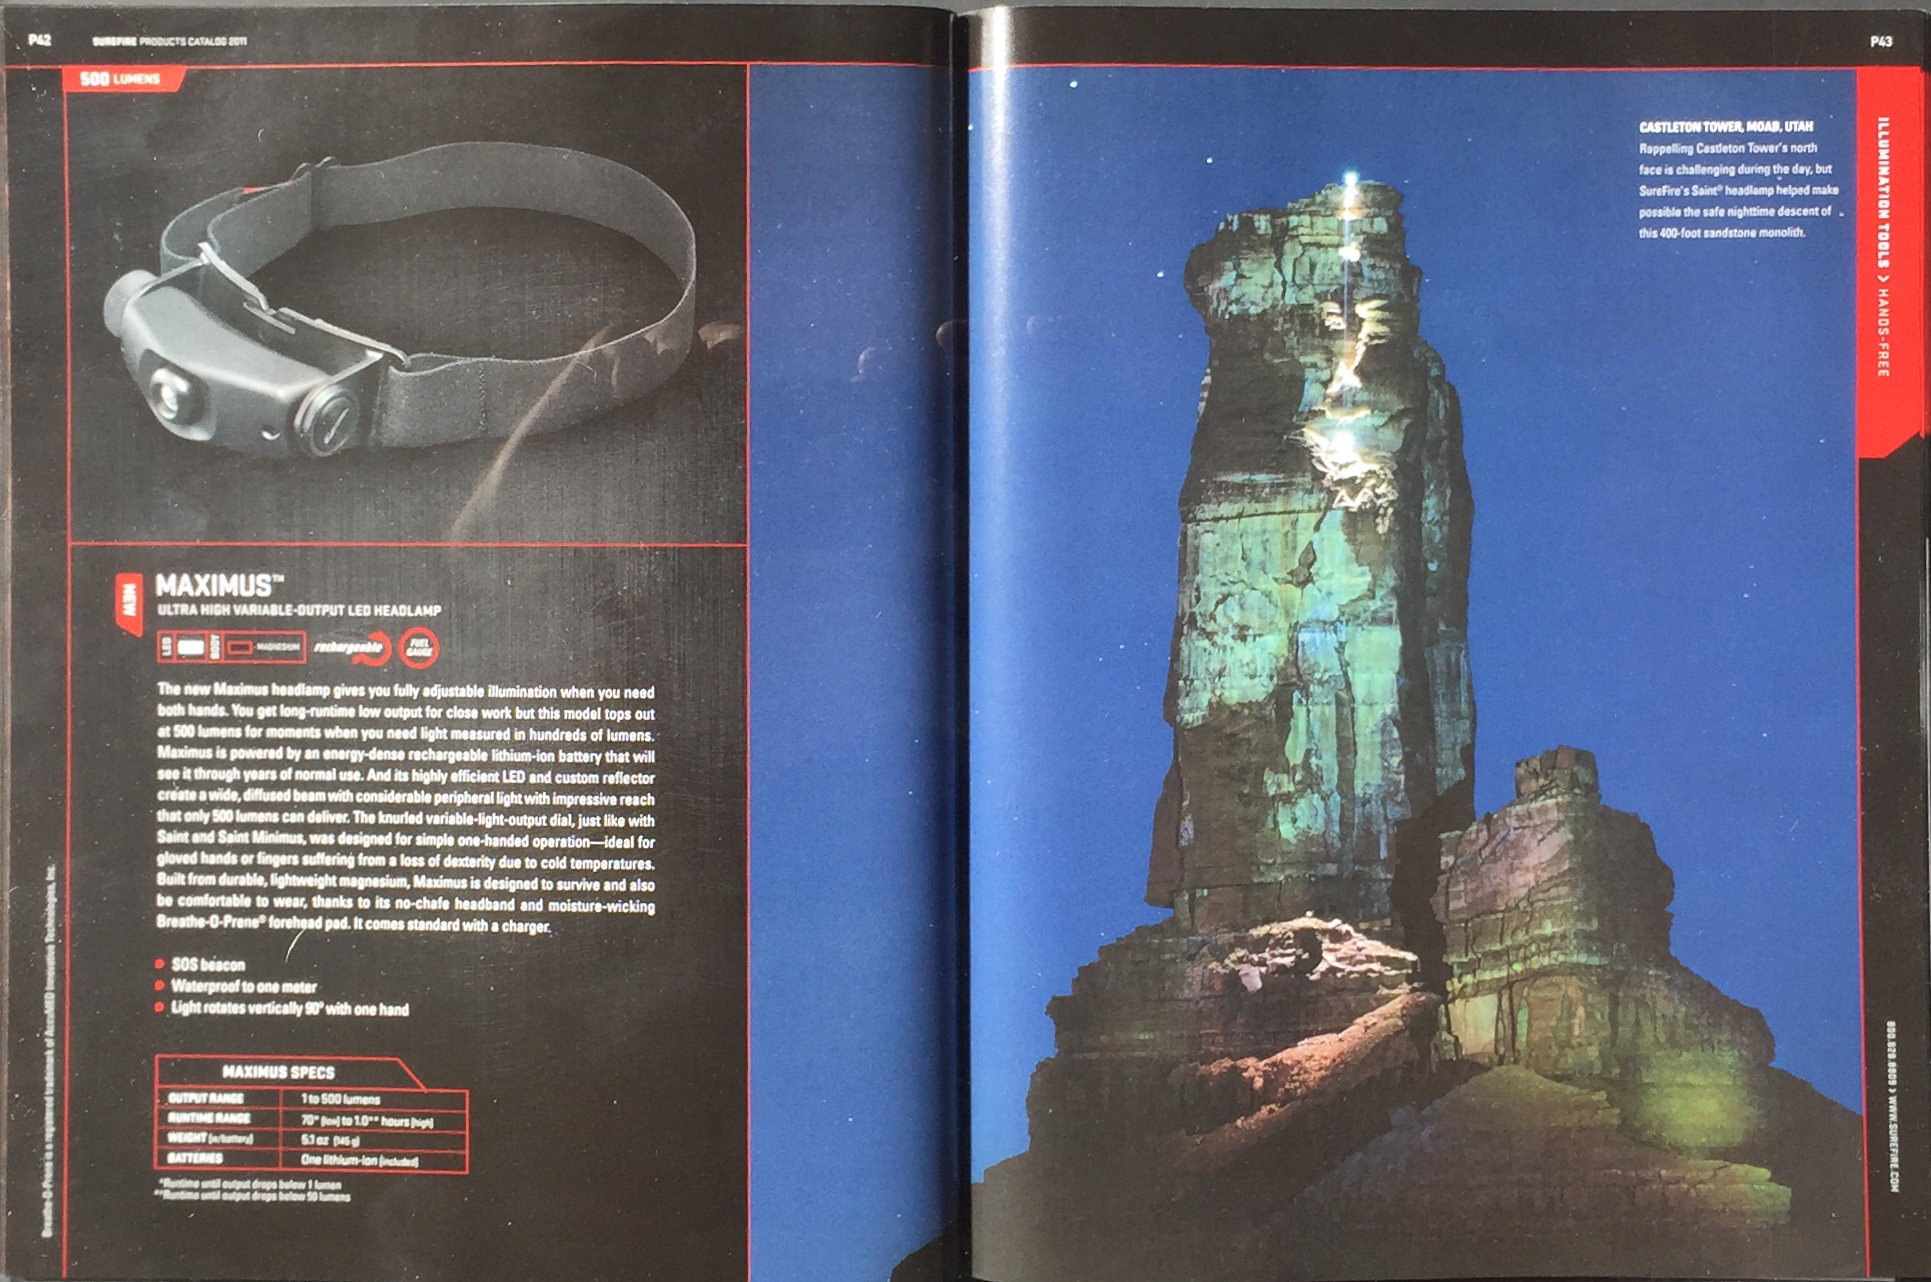 SUREFIRE CATALOG   ADVENTURE MODEL: ERIC ODENTHAL (ON THE TOWER HOLDING THE LIGHT)  PHOTOGRAPHER;  GREG VON DOERSTEN